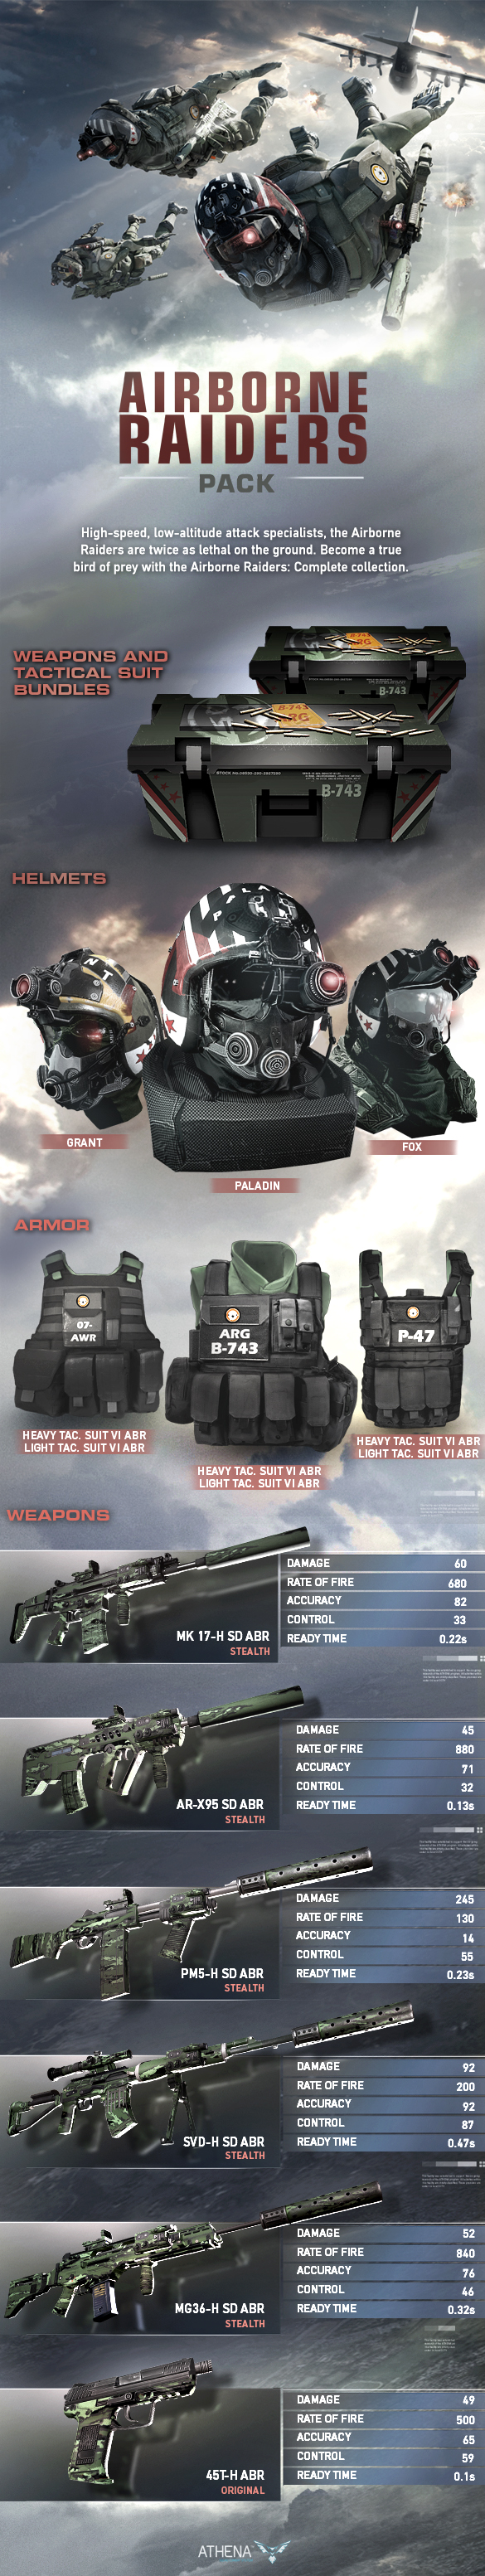 Airborne raiders pack